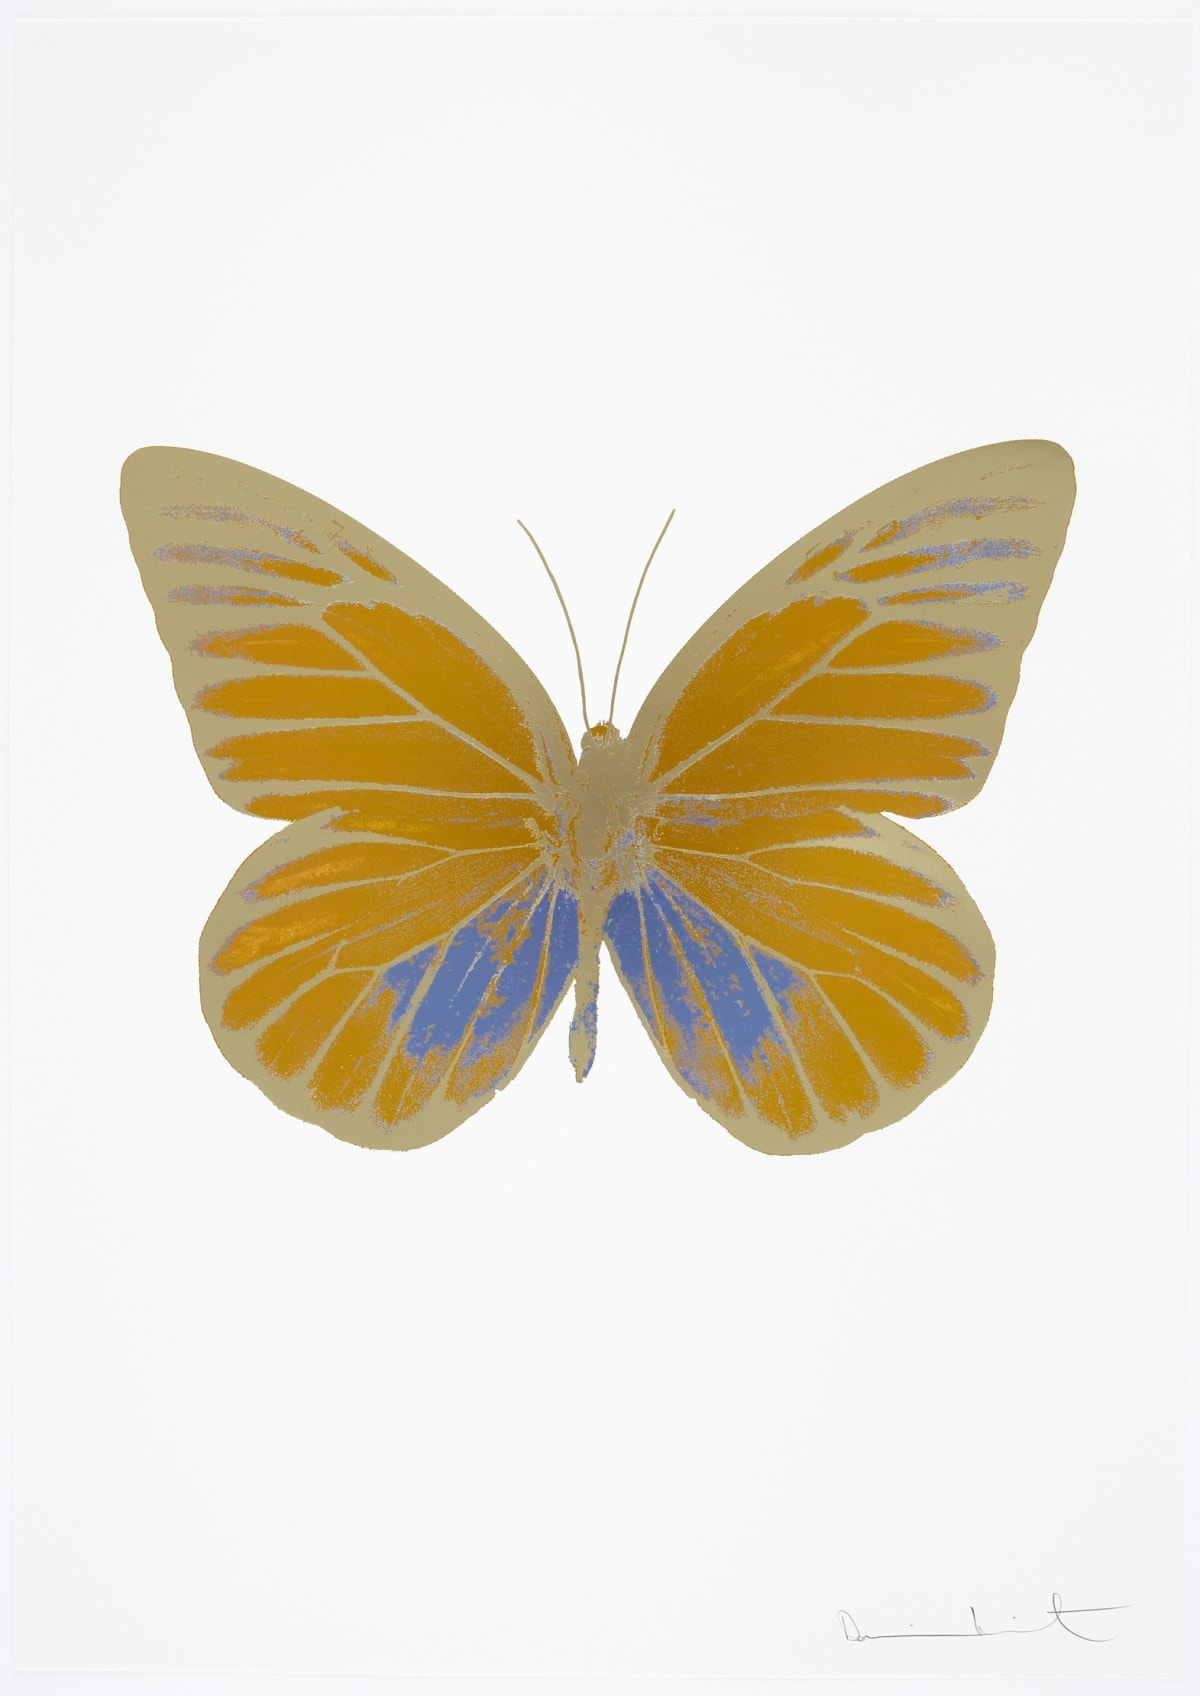 Damien Hirst The Souls I - Paradise Copper/Cornflower Blue/Cool Gold, 2010 3 colour foil block on 300gsm Arches 88 archival paper. Signed and numbered. Published by Paul Stolper and Other Criteria 72 x 51cm OC7757 / 659-20 Edition of 15